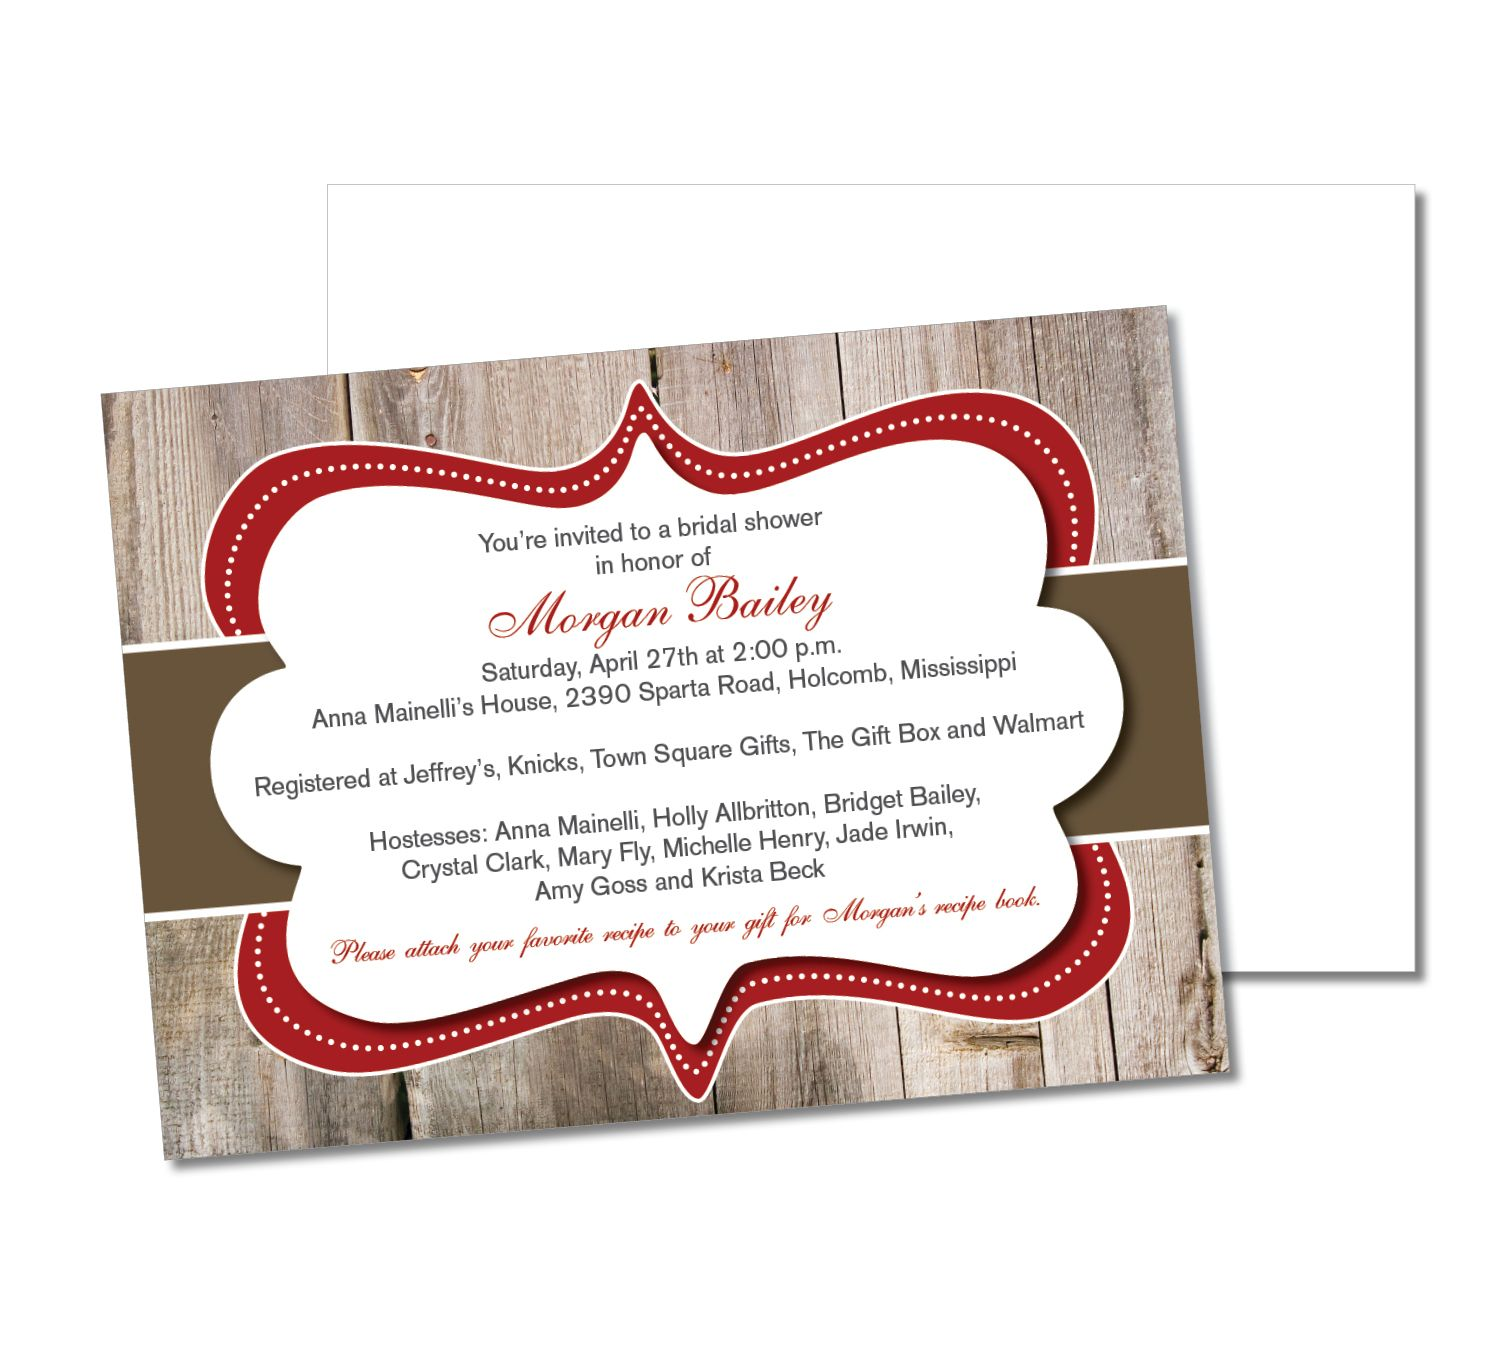 wooden wood stripe vintage ornate ornament red and brown wedding ...